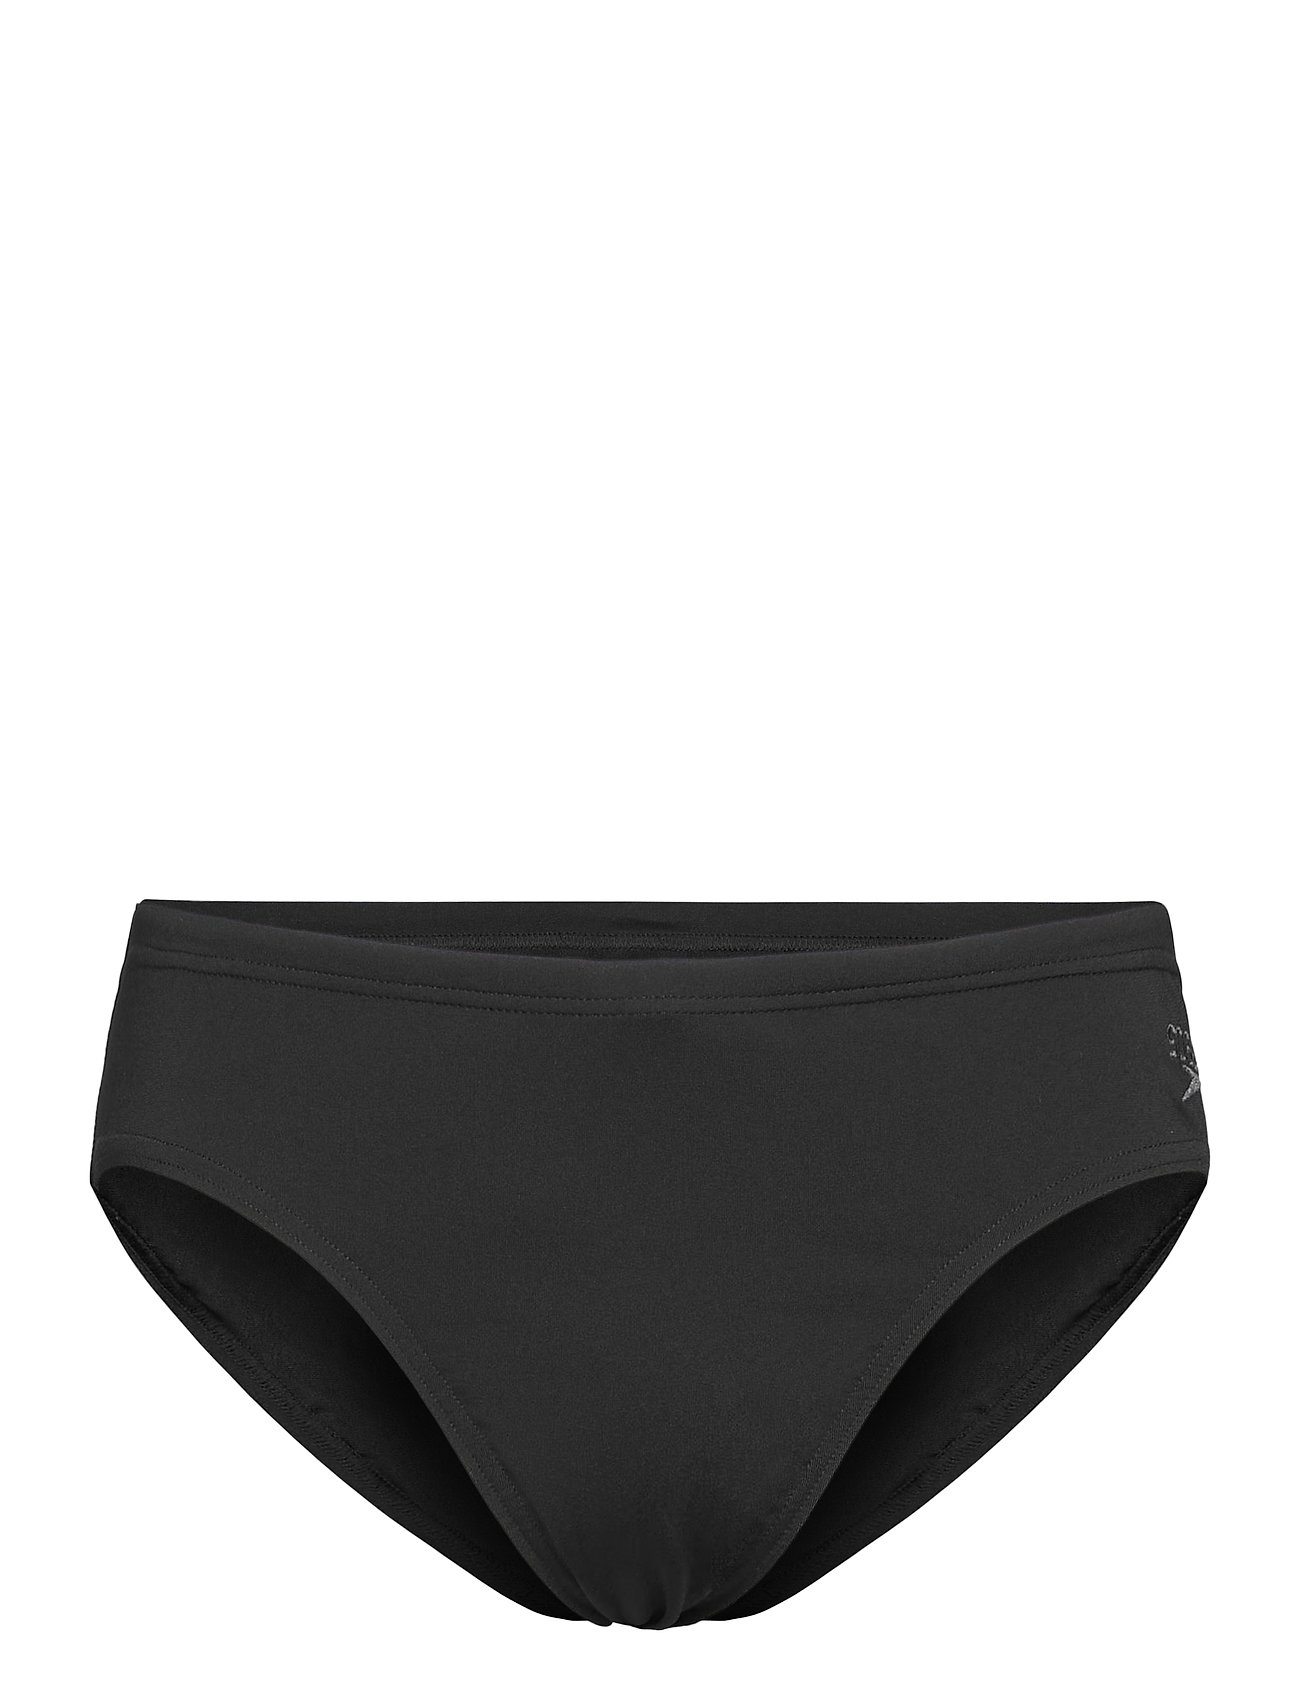 Image of Essentials Endurance + 7cm Brief Swimwear Briefs & Speedos Sort Speedo (3493466885)